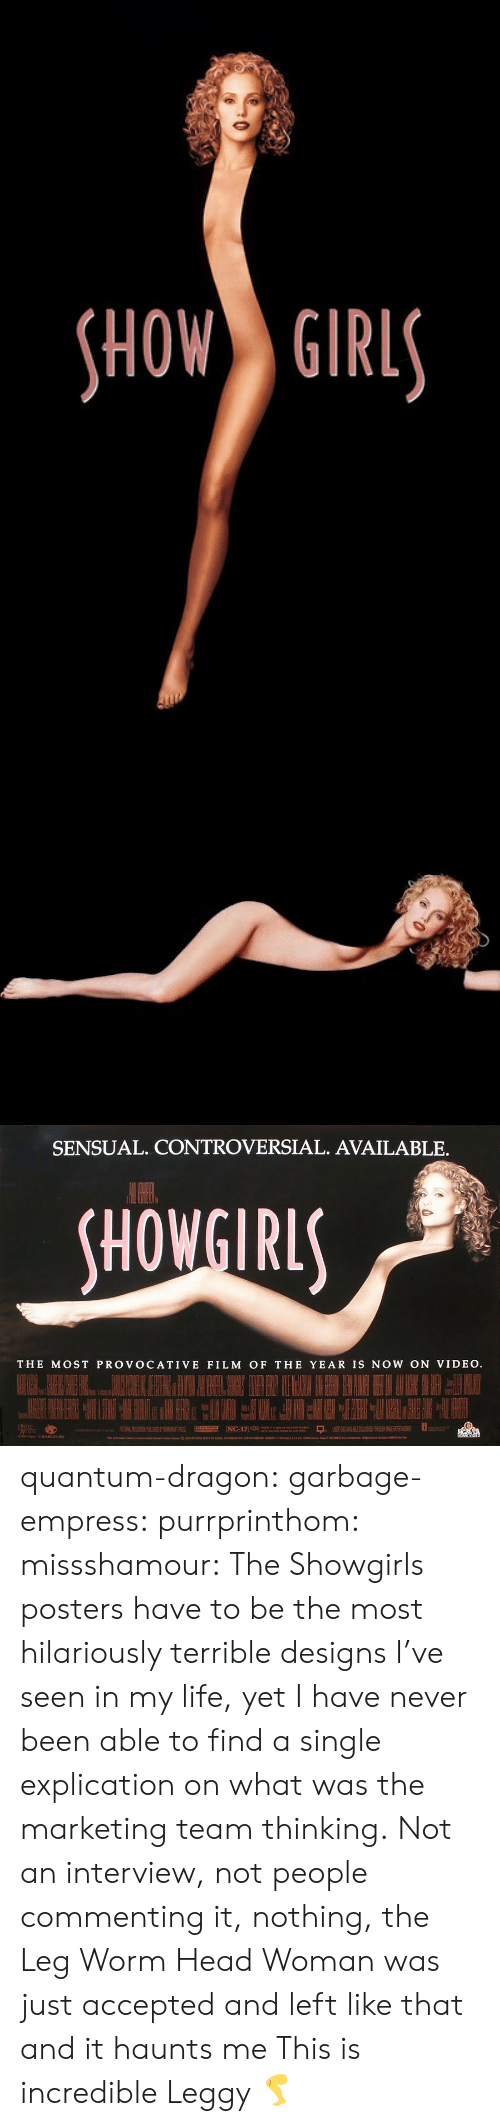 posters: HOW GIRL   SENSUAL. CONTROVERSIAL. AVAILABLE.  HOWGIRL  THE MOST PROVOCATIVE FILM OF THE YEAR IS NOW ON VIDEO quantum-dragon:  garbage-empress:  purrprinthom:  missshamour:  The Showgirls posters have to be the most hilariously terrible designs I've seen in my life, yet I have never been able to find a single explication on what was the marketing team thinking. Not an interview, not people commenting it, nothing, the Leg Worm Head Woman was just accepted and left like that and it haunts me  This is incredible        Leggy 🦵